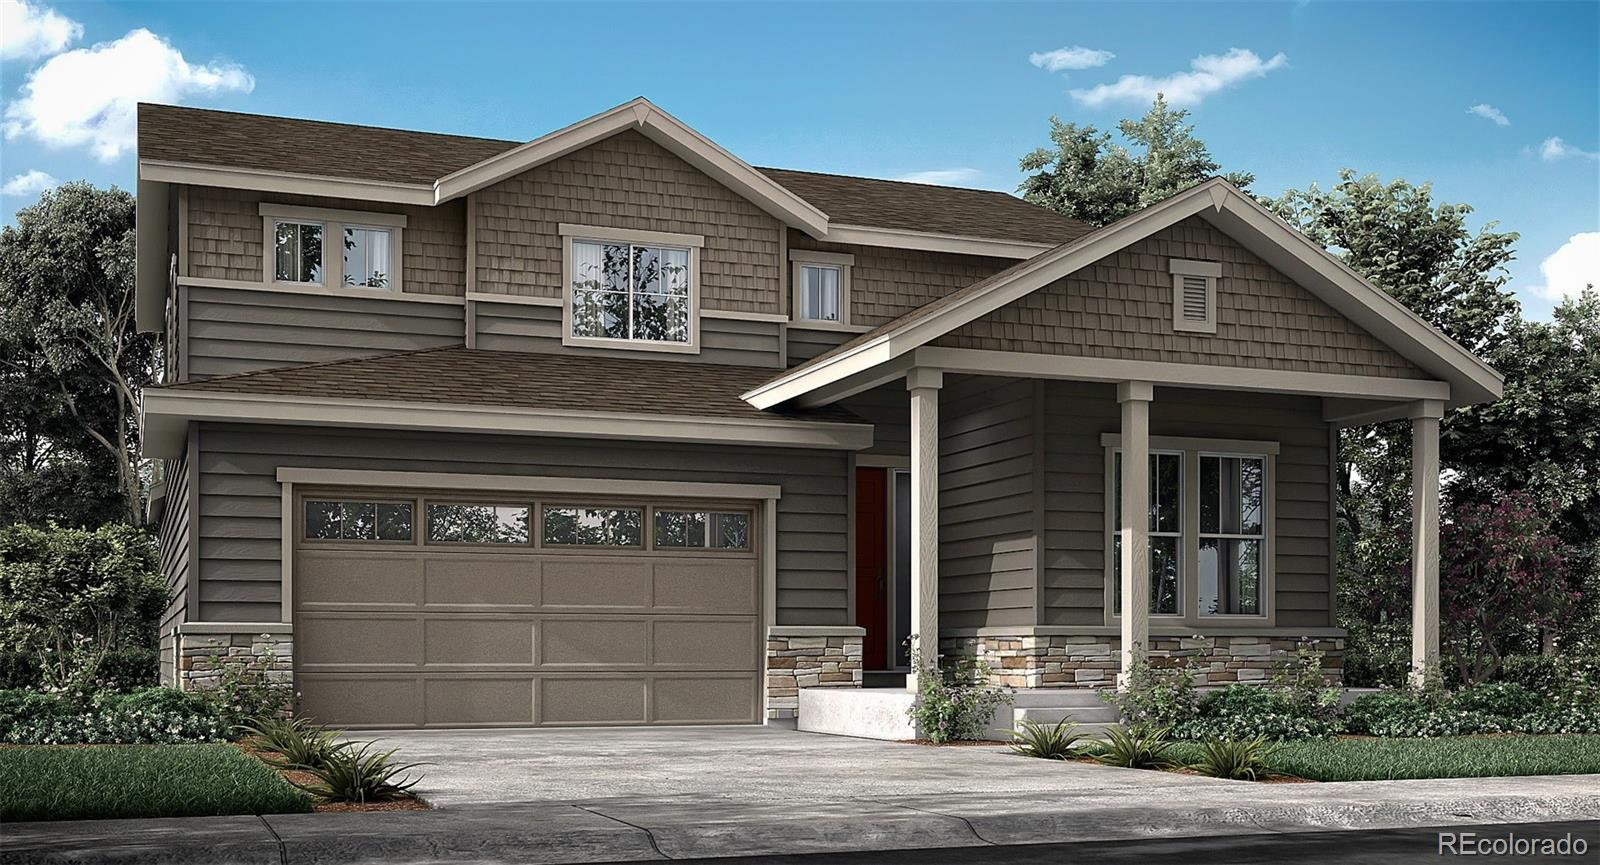 Available September 2020! This stunning Bristlecone 2-story home features 5 beds (4 upper / 1 main), 3 baths, main floorstudy, kitchen w/breakfast nook, great room, unfinished basement and 3 car garage. This brand new CalAtlantic/Lennar community provides the best of Colorado living. Lennar provides the latest in energy efficiency and state of the art technology with several fabulous floorplans to choose from. Energy efficiency, and technology/connectivity seamlessly blended with luxury to make your new house a home. What some builders consider high-end upgrades, Lennar makes a standard inclusion. You will not be disappointed. This community offers single family homes for every lifestyle. Close to dining, shopping, entertainment and other amenities. Come see what you have been missing. Welcome Home. Design selections have yet to be made.